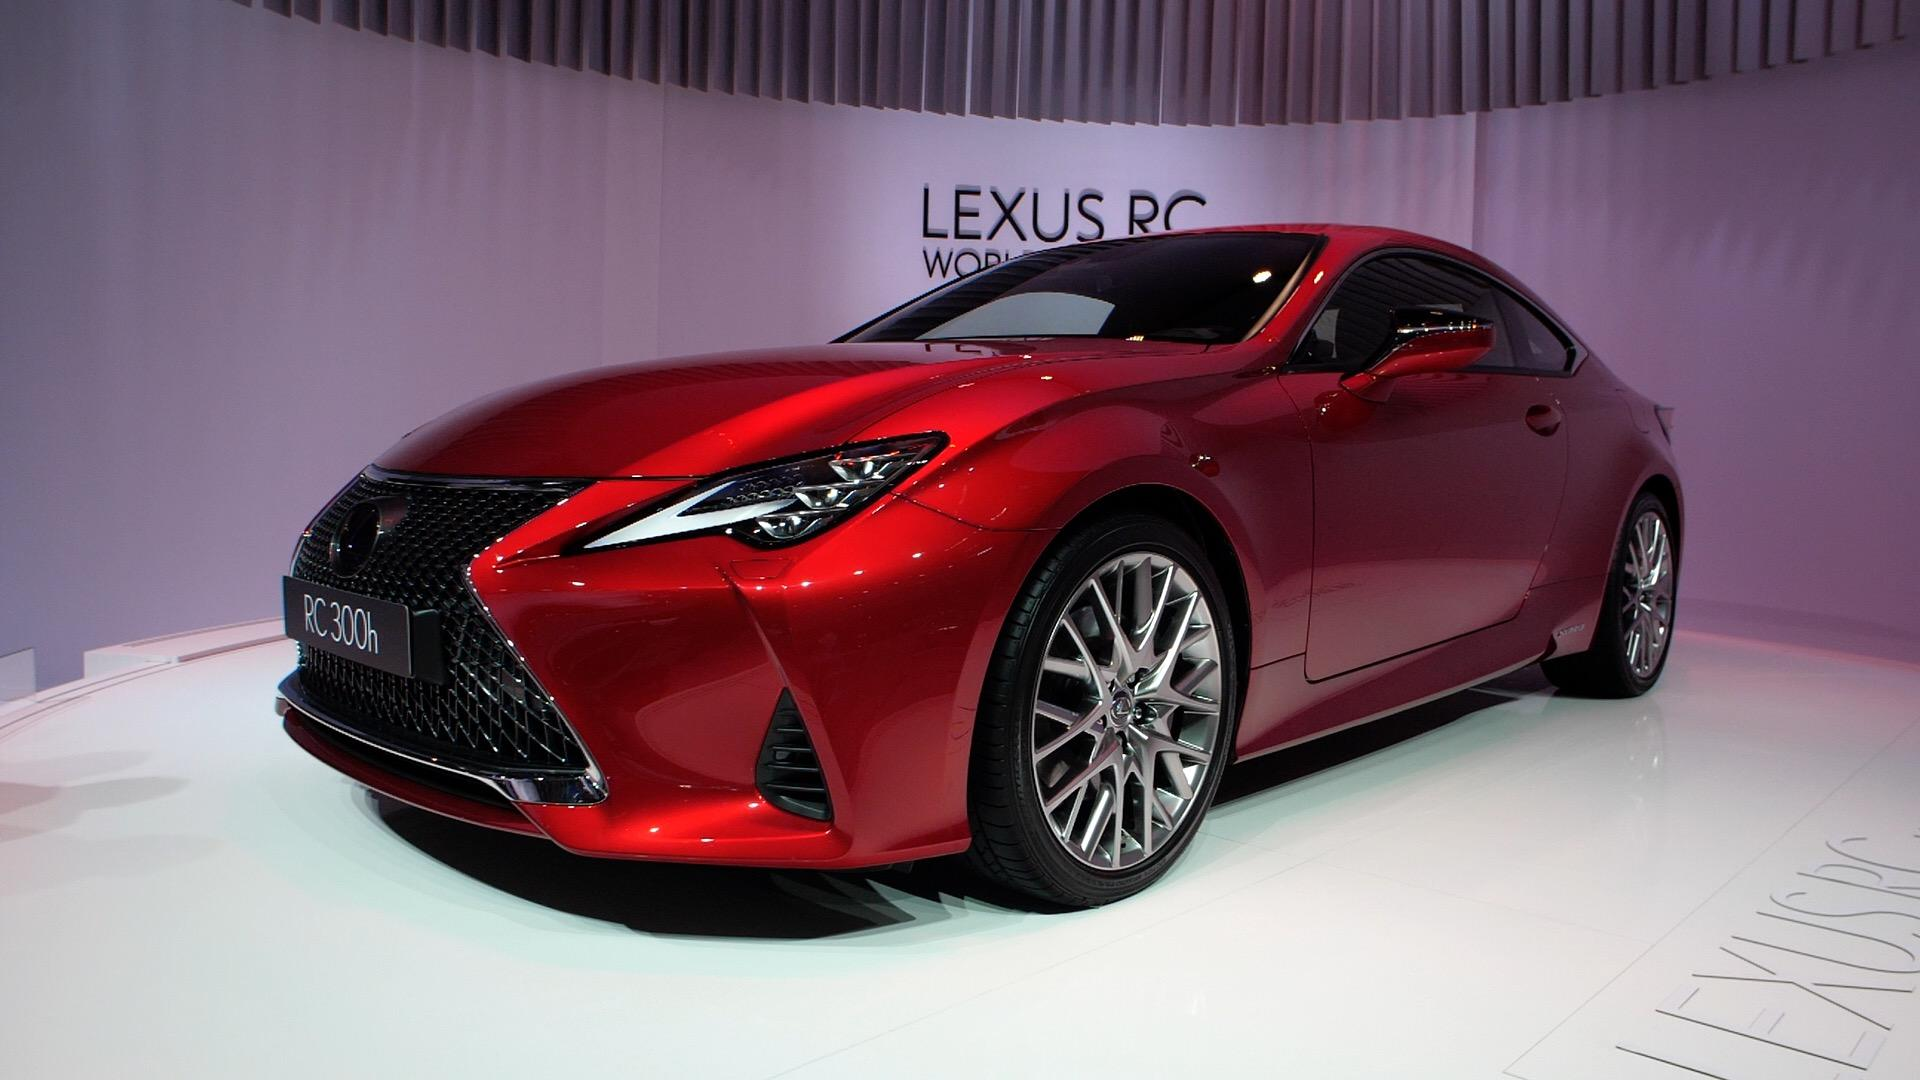 Video: Lexus debuts a refreshed RC coupe at Paris Motor Show